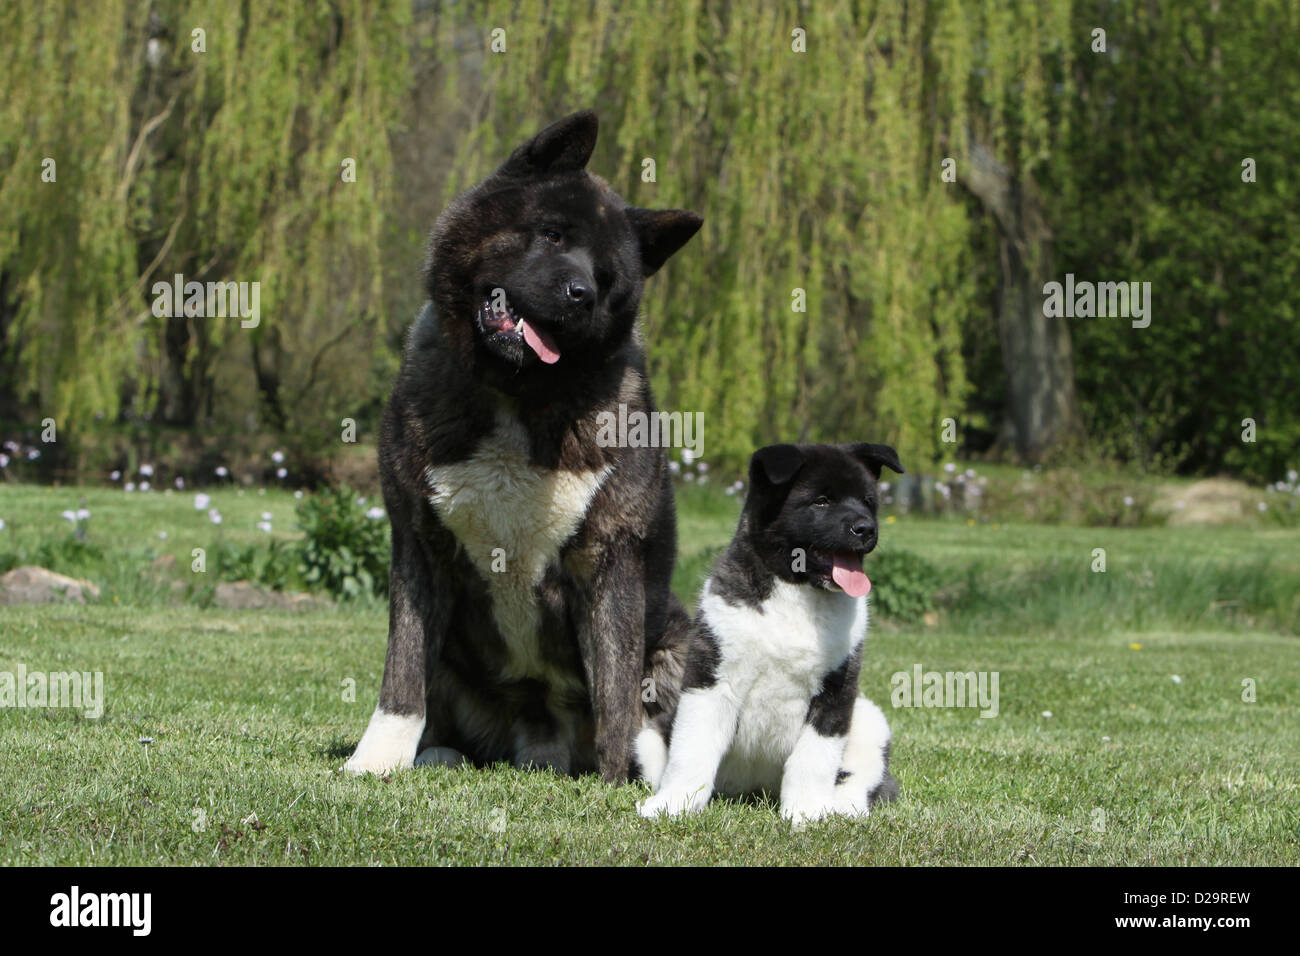 Akita Dog Breed Information, Buying Advice, Photos and more ...